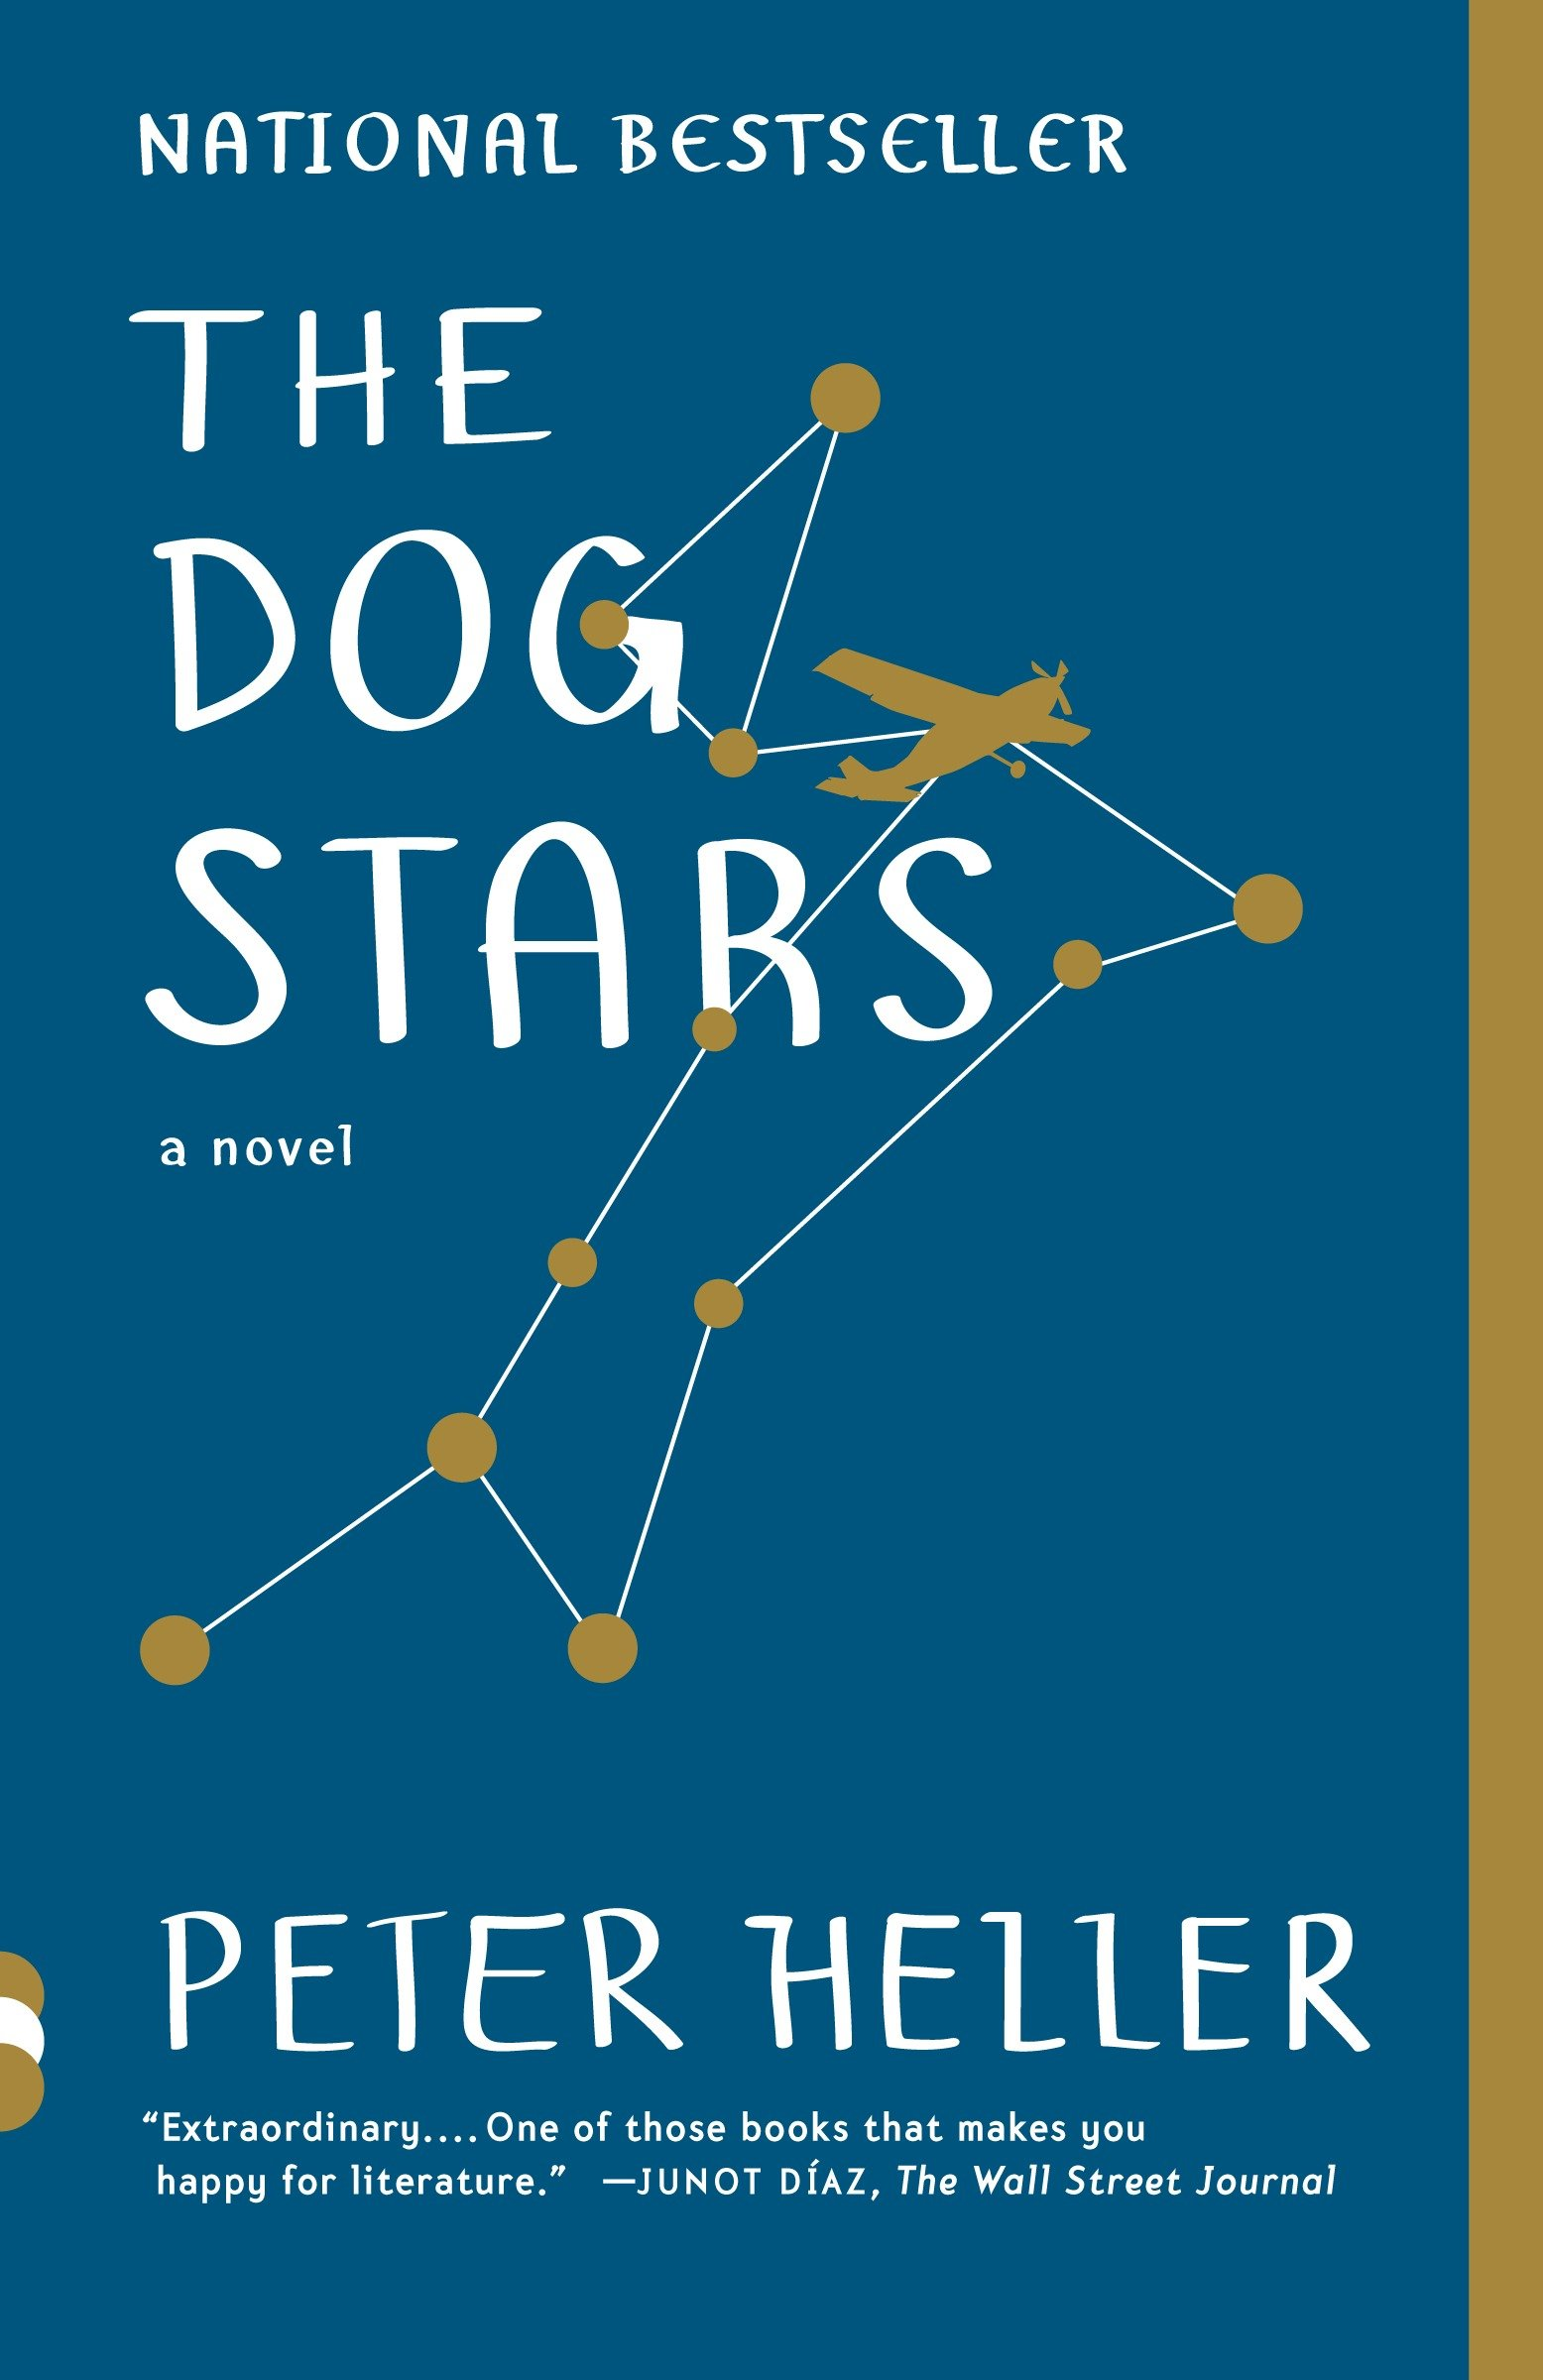 The dog stars cover image